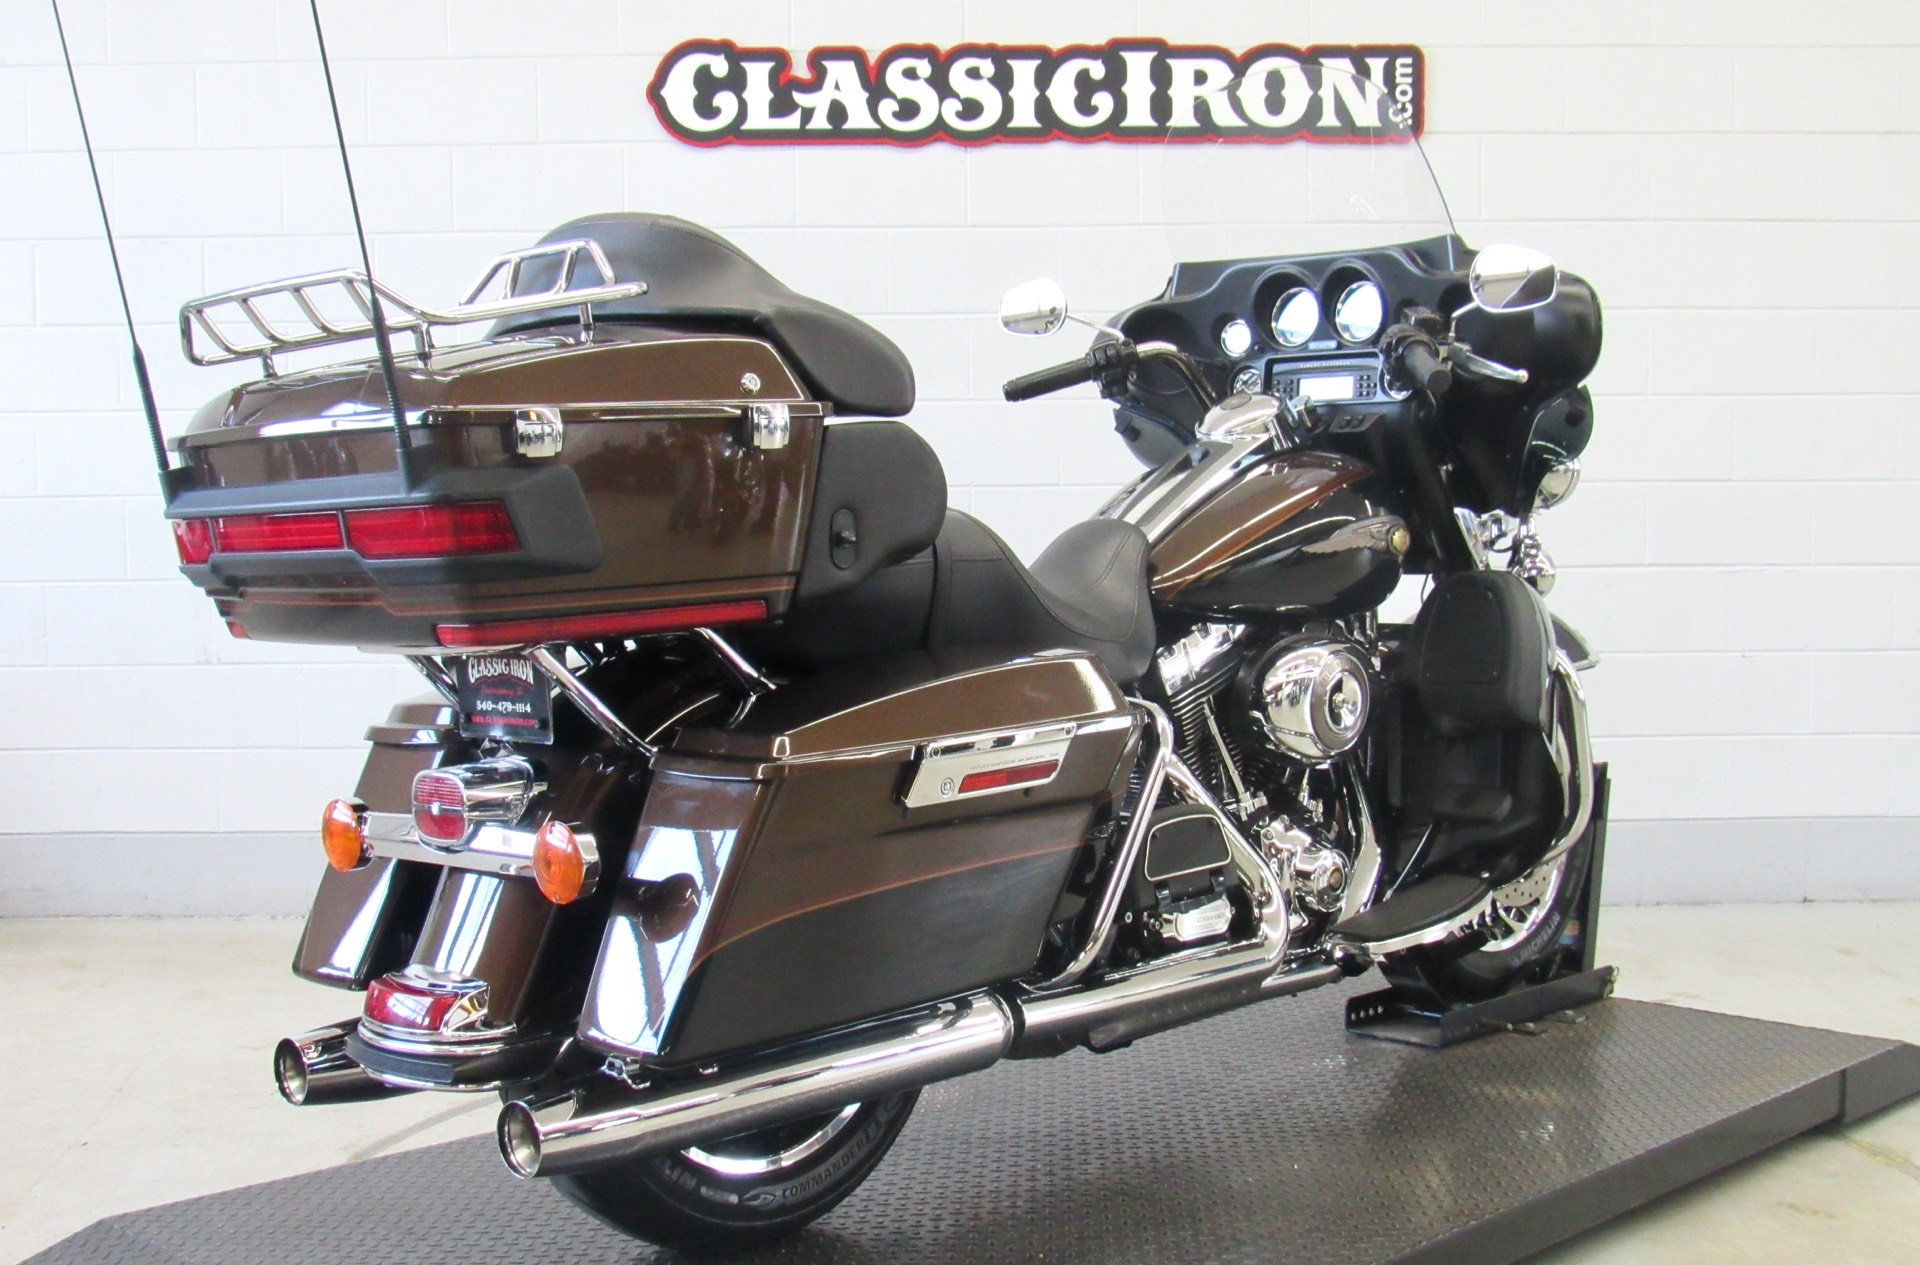 2013 Harley-Davidson Electra Glide® Ultra Limited 110th Anniversary Edition in Fredericksburg, Virginia - Photo 6